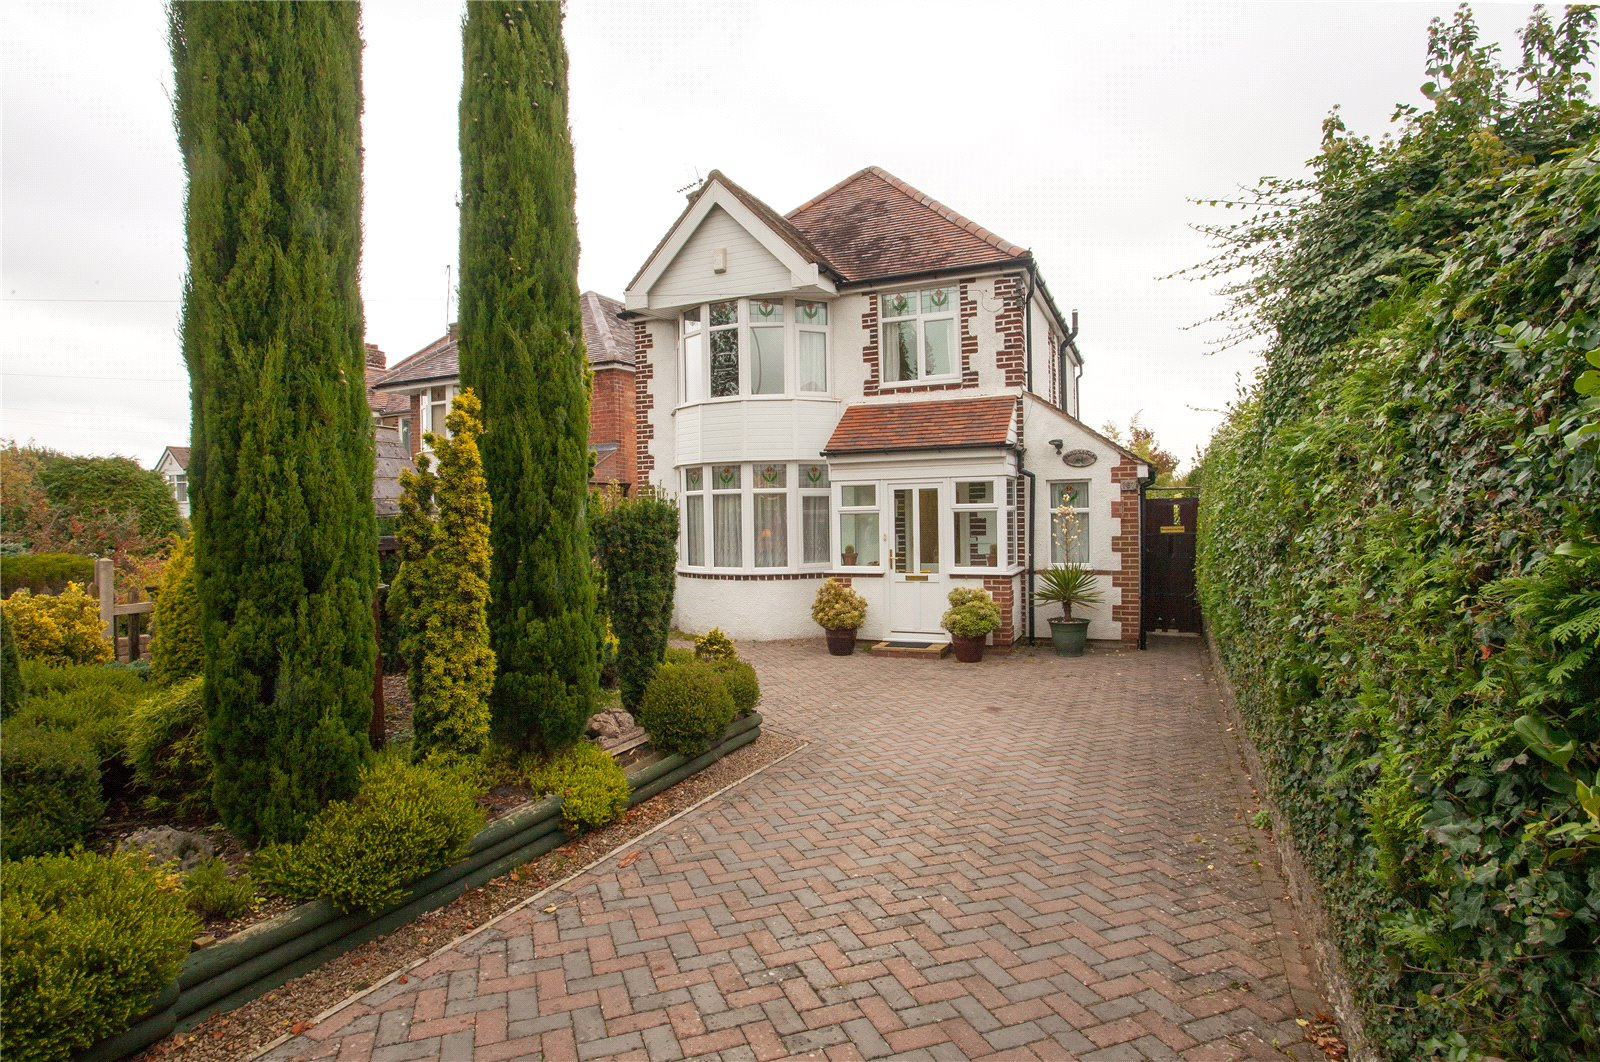 Cj Hole Hucclecote 3 Bedroom House For Sale In Ermin